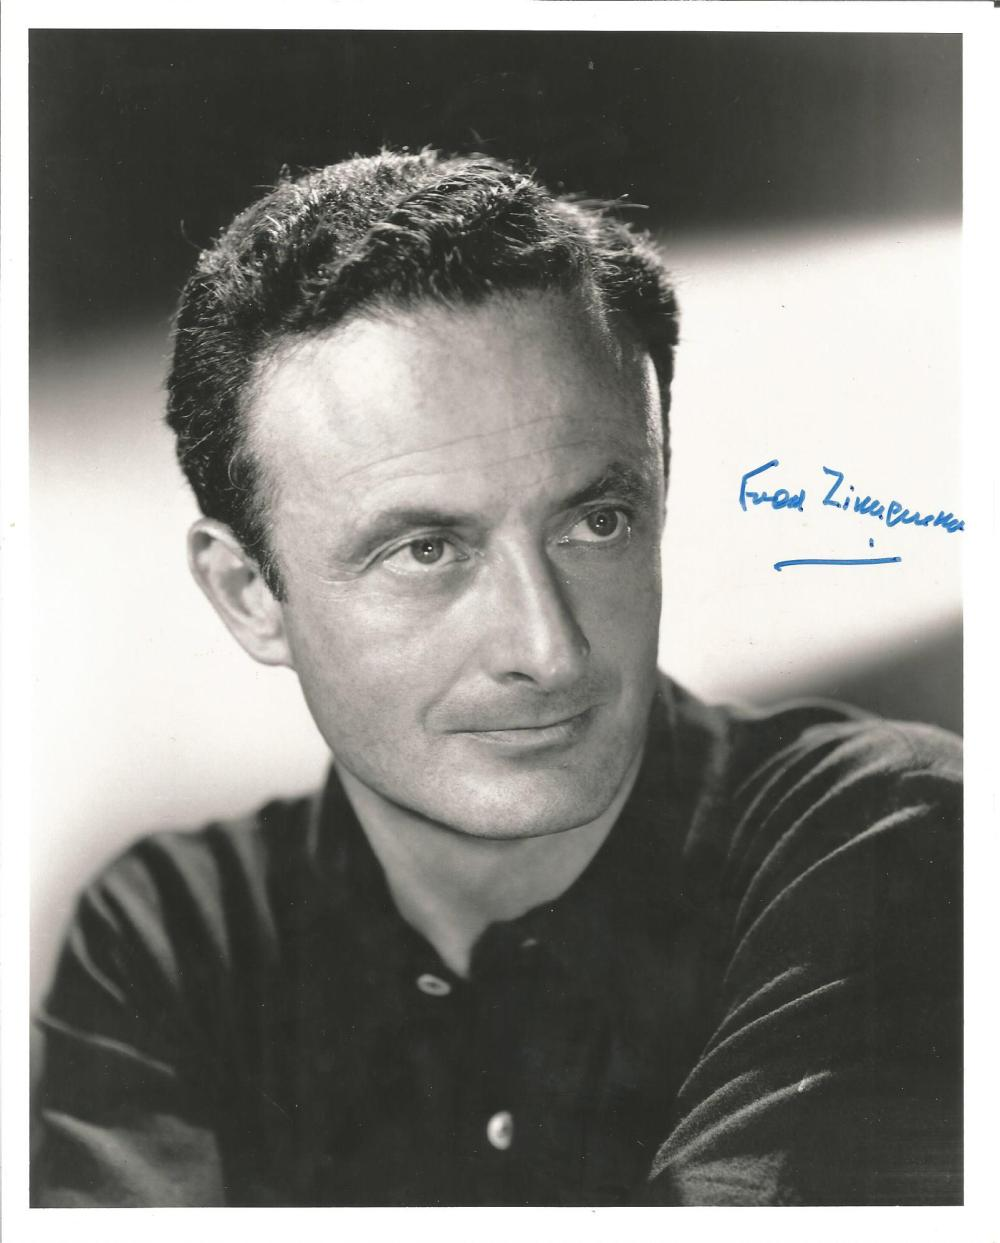 Fred Zinnemann signed 10x8 b/w photo. (April 29, 1907 - March 14, 1997) was an Austrian-born